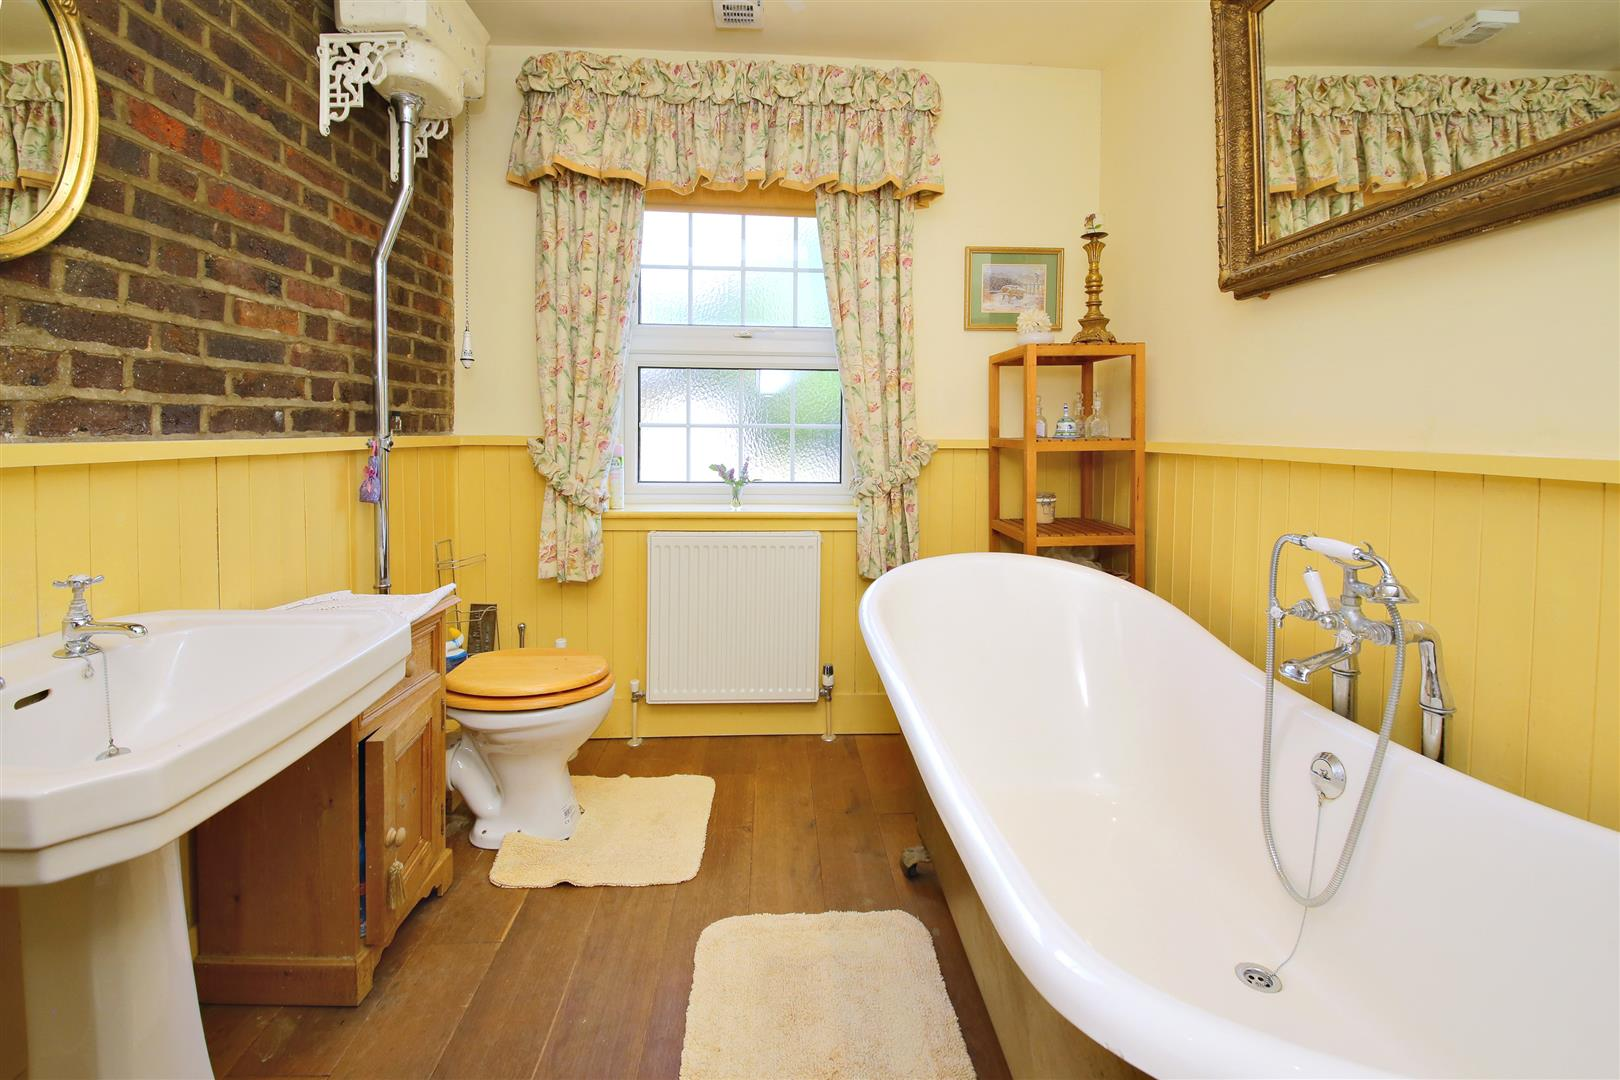 3 bed for sale in Station Road, Bricket Wood - (Property Image 5)